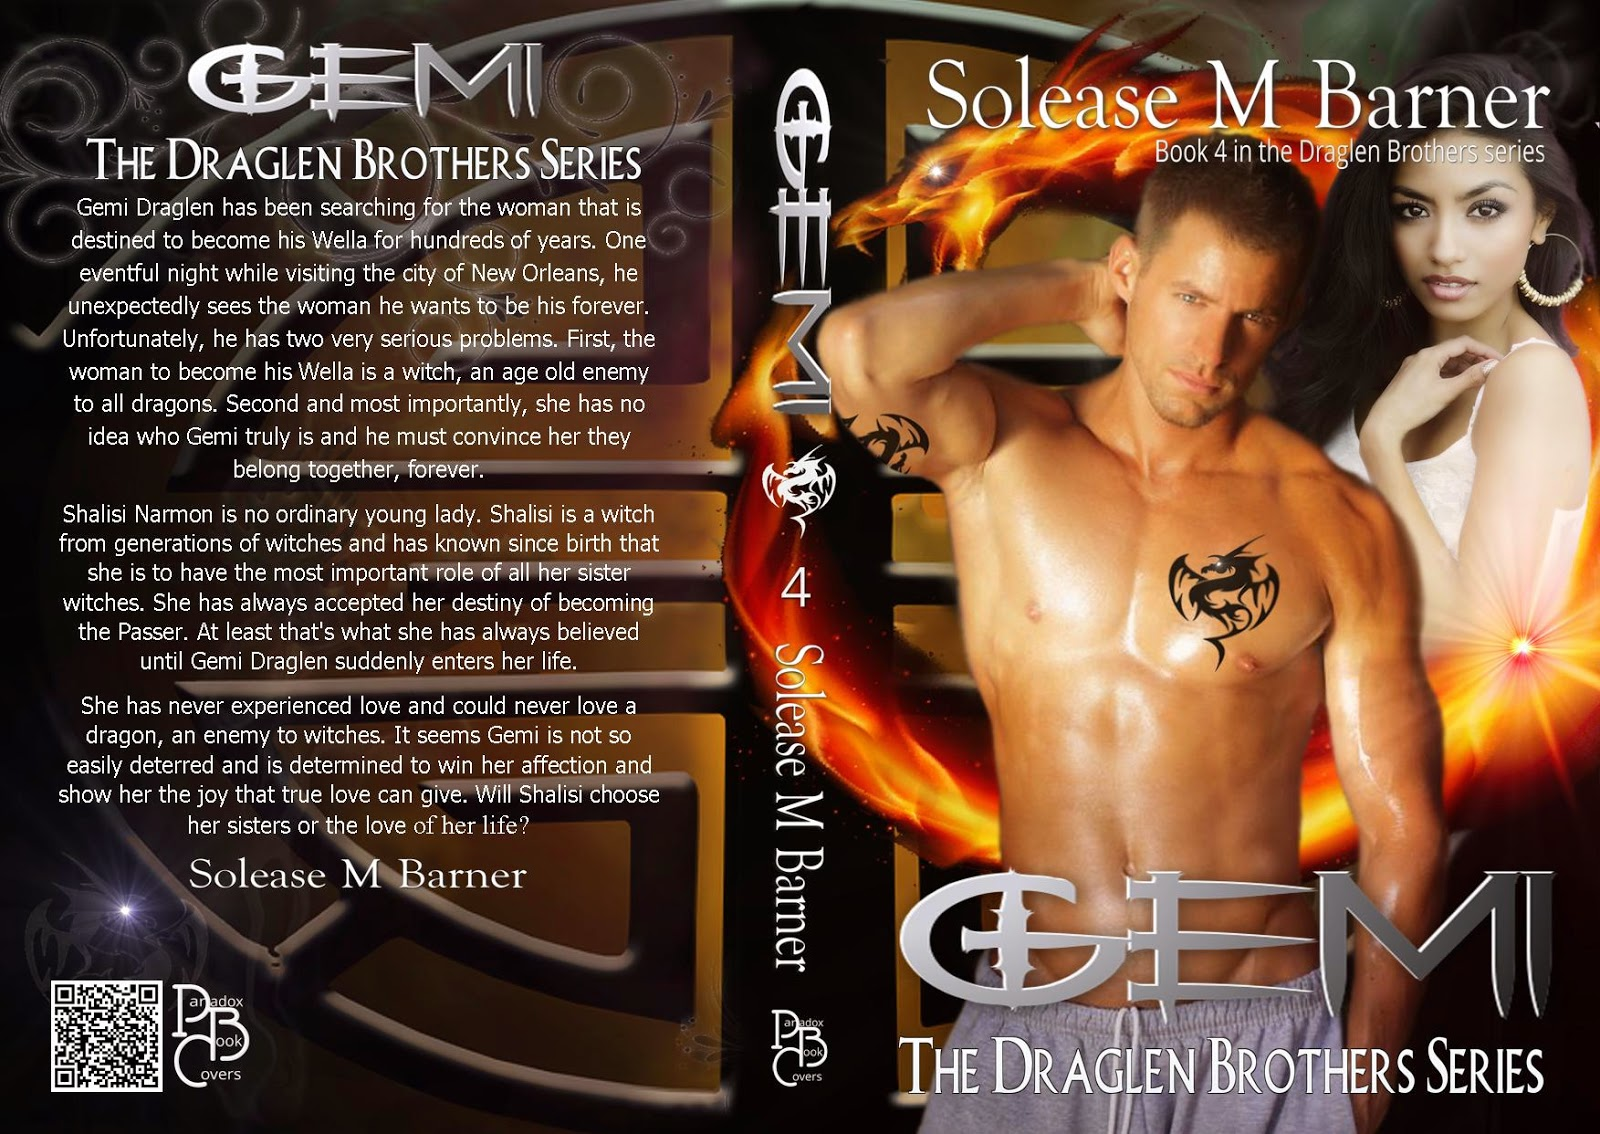 New Release By Solease M Barner